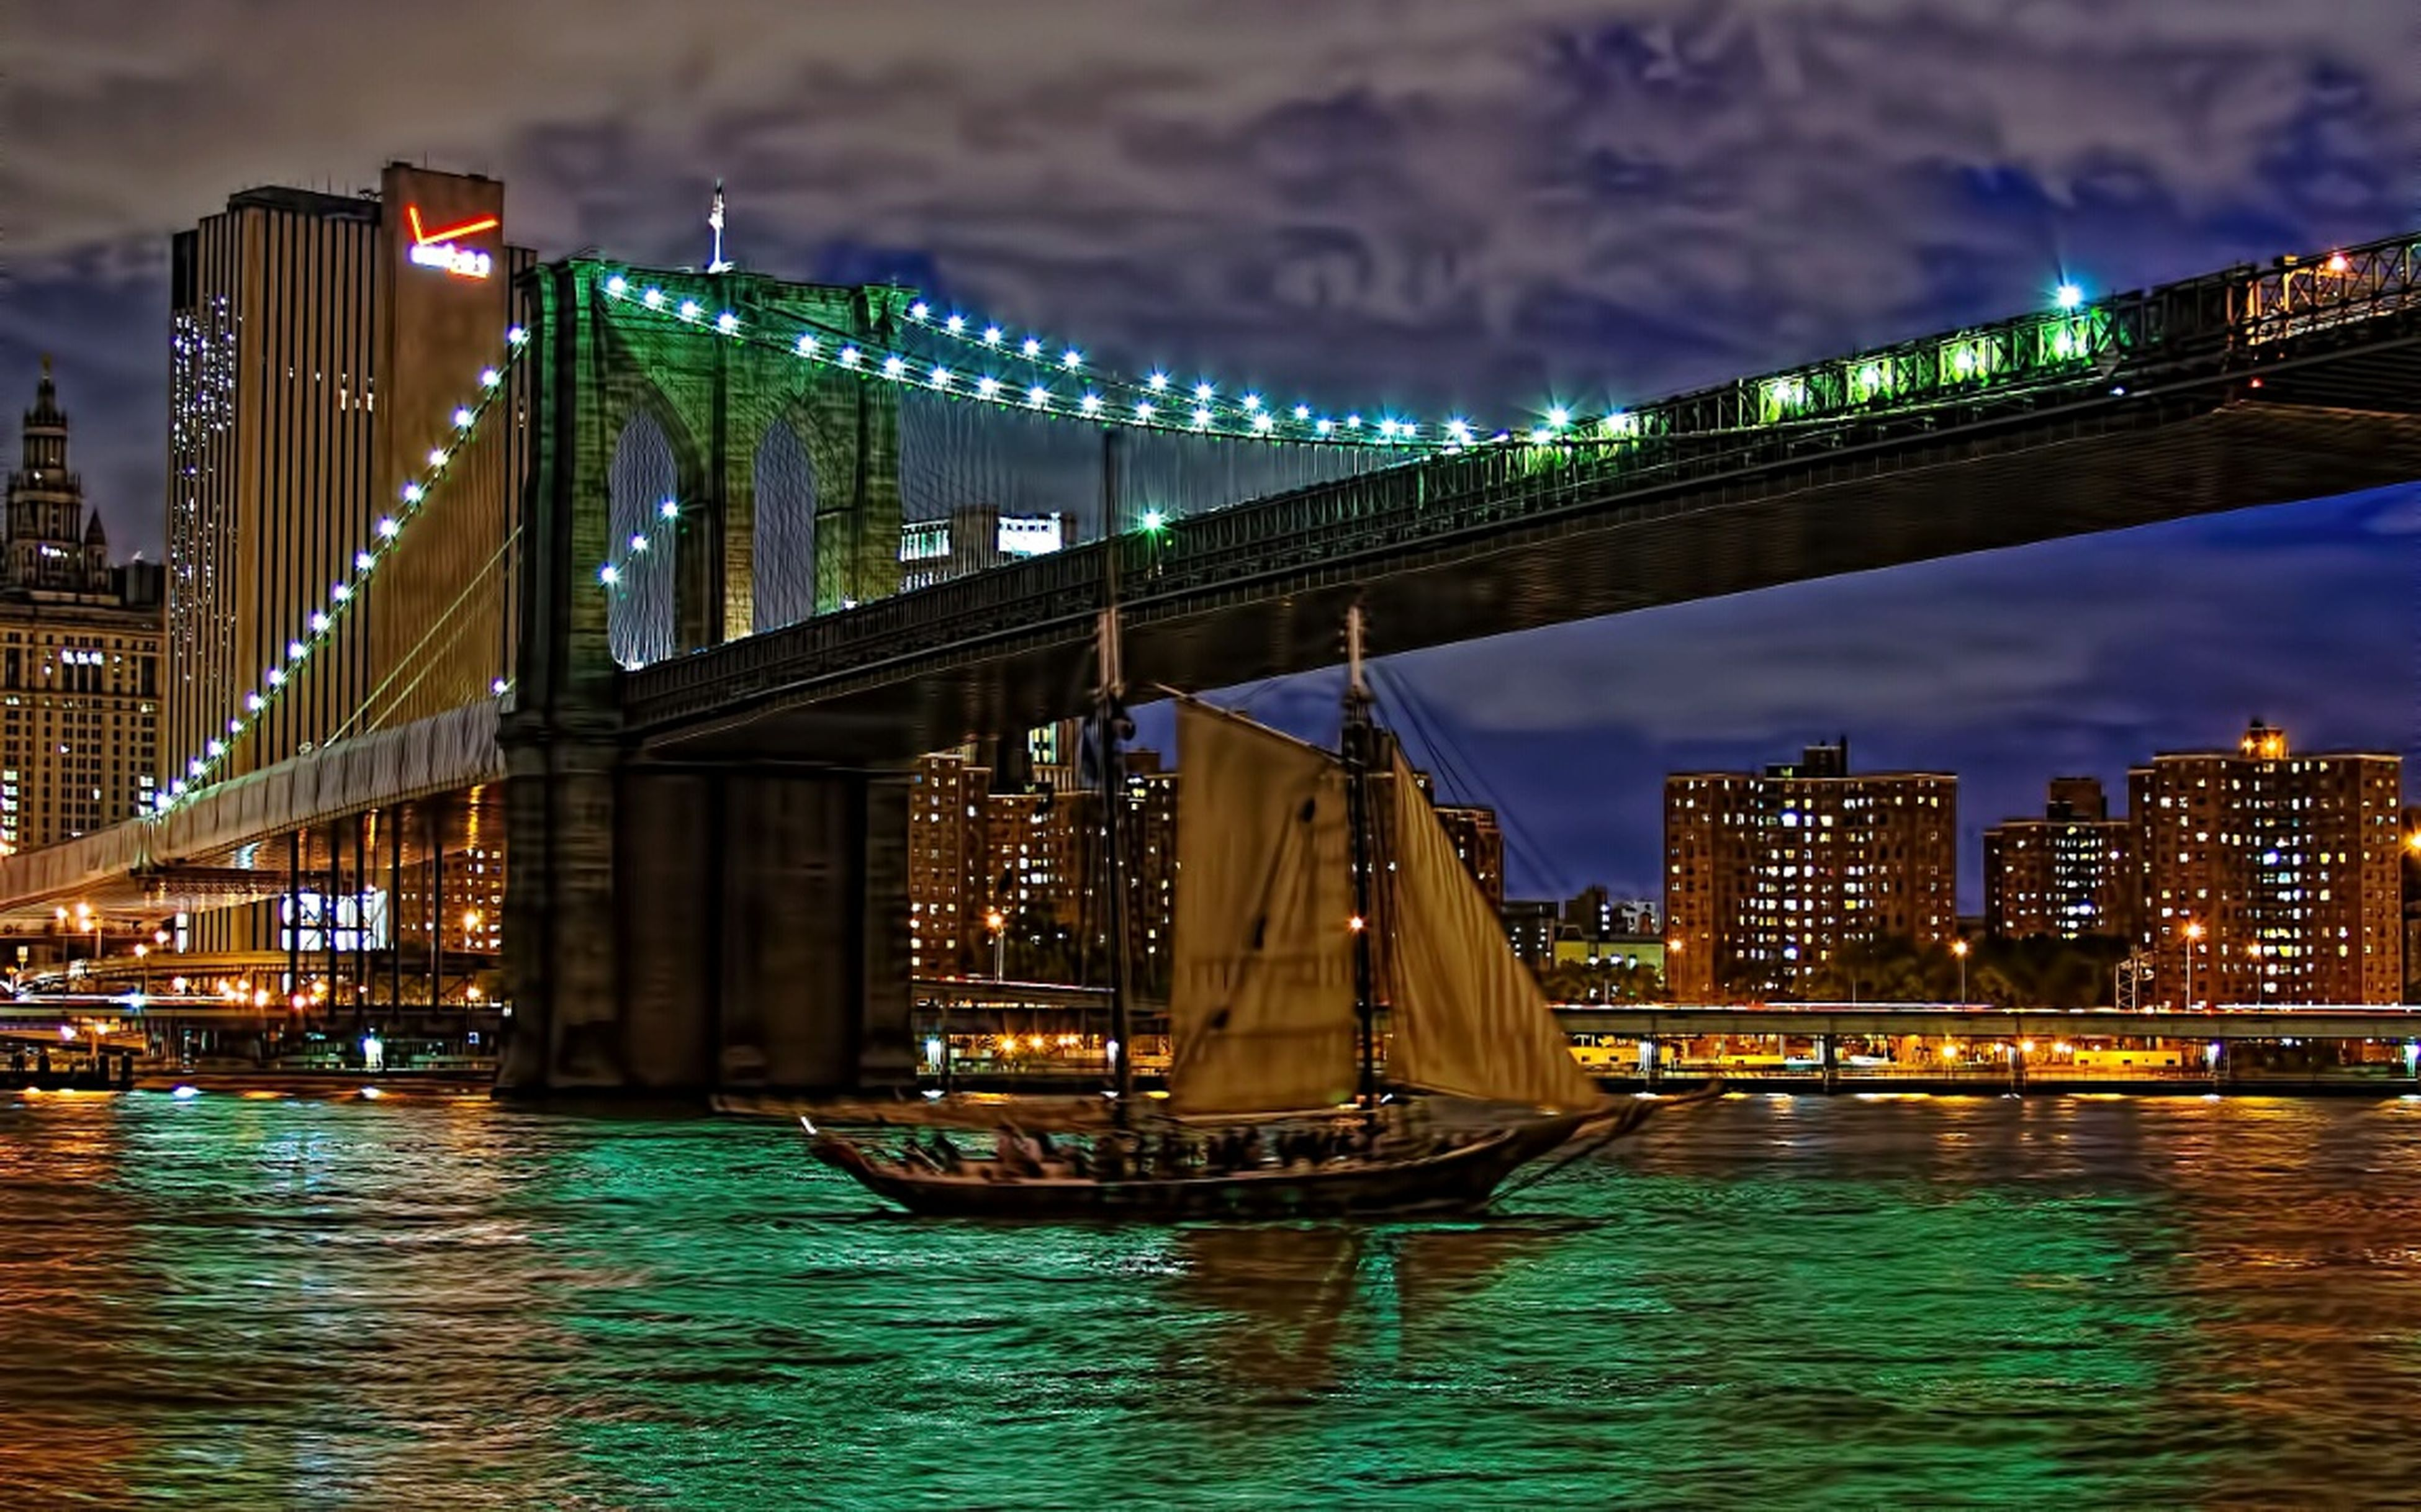 architecture, built structure, water, waterfront, bridge - man made structure, connection, illuminated, river, engineering, city, transportation, sky, building exterior, bridge, night, suspension bridge, sea, dusk, cloud - sky, travel destinations